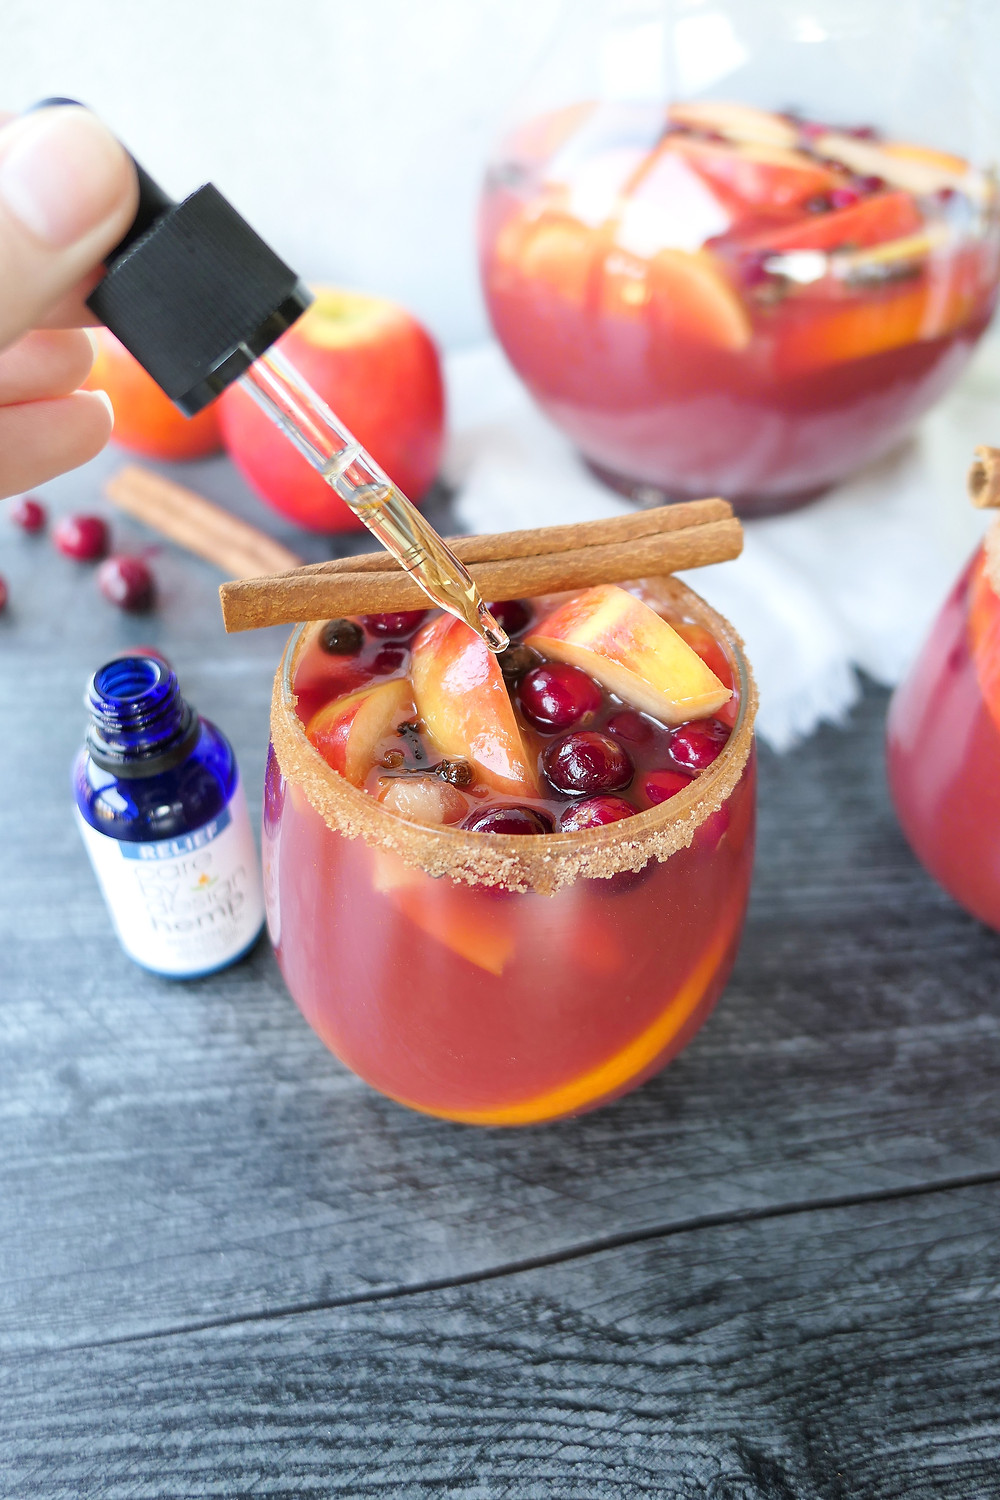 The Herb Somm's CBD Sangria Infused With Care By Design Hemp